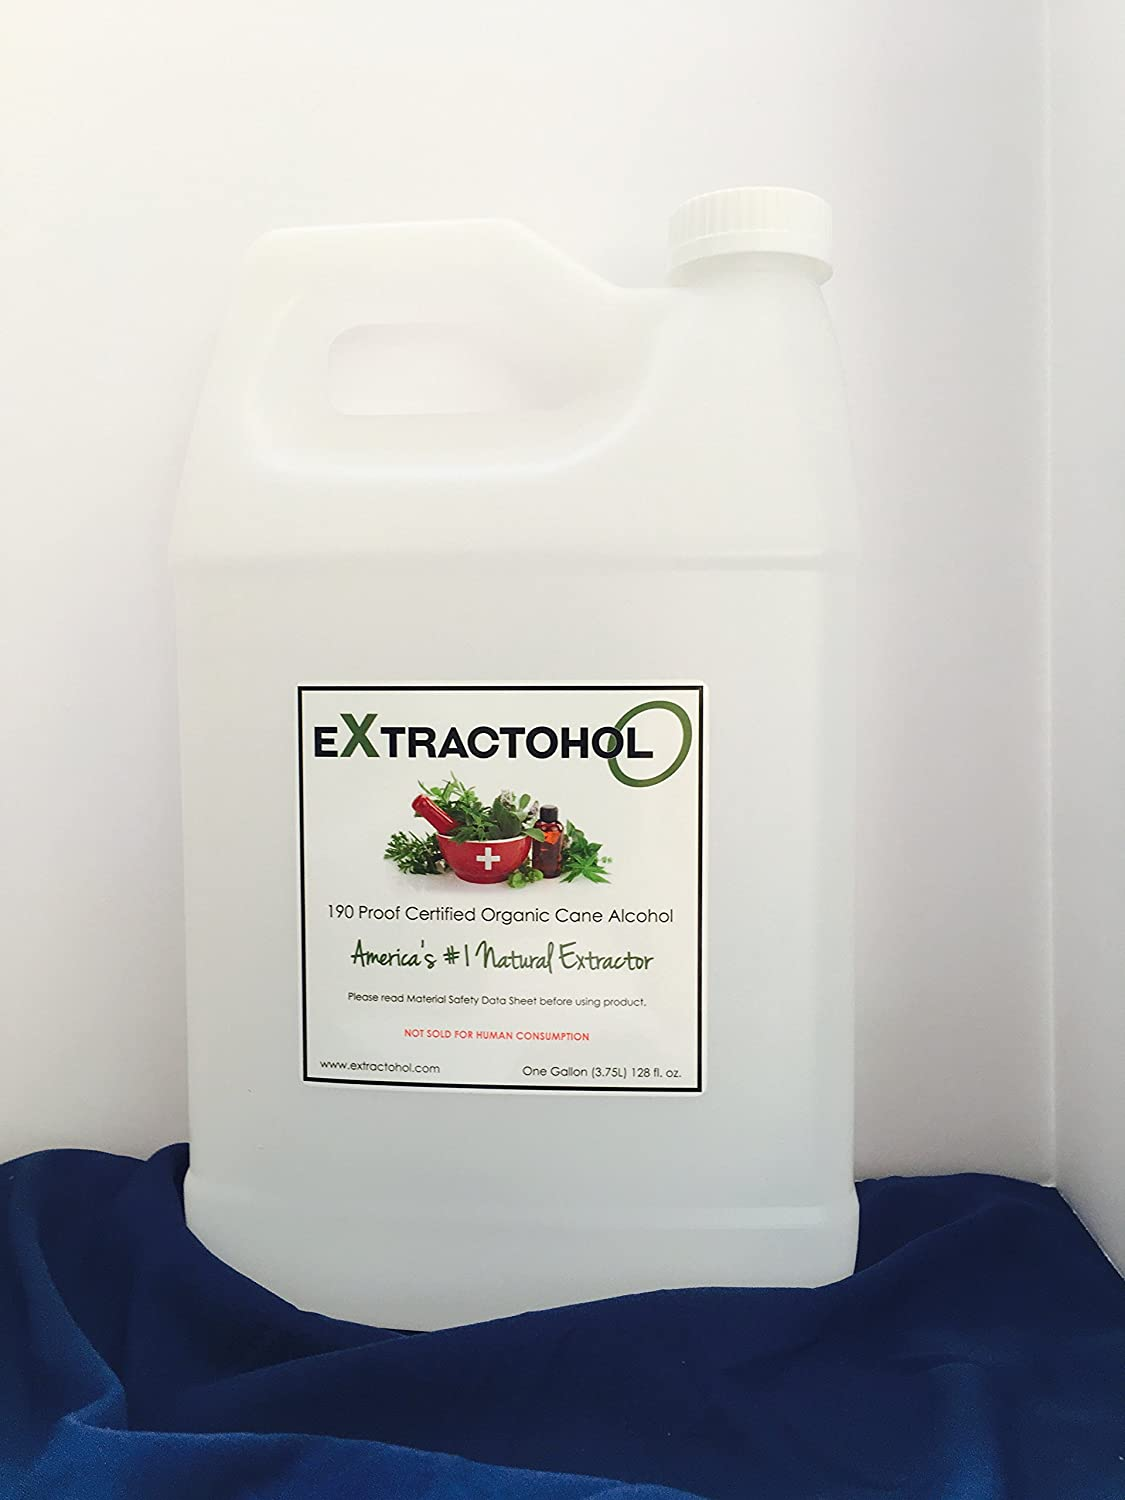 Extractohol-Organic USP Certified 190 Proof Cane (+ 8 oz extra - Free, added to Gallon!)